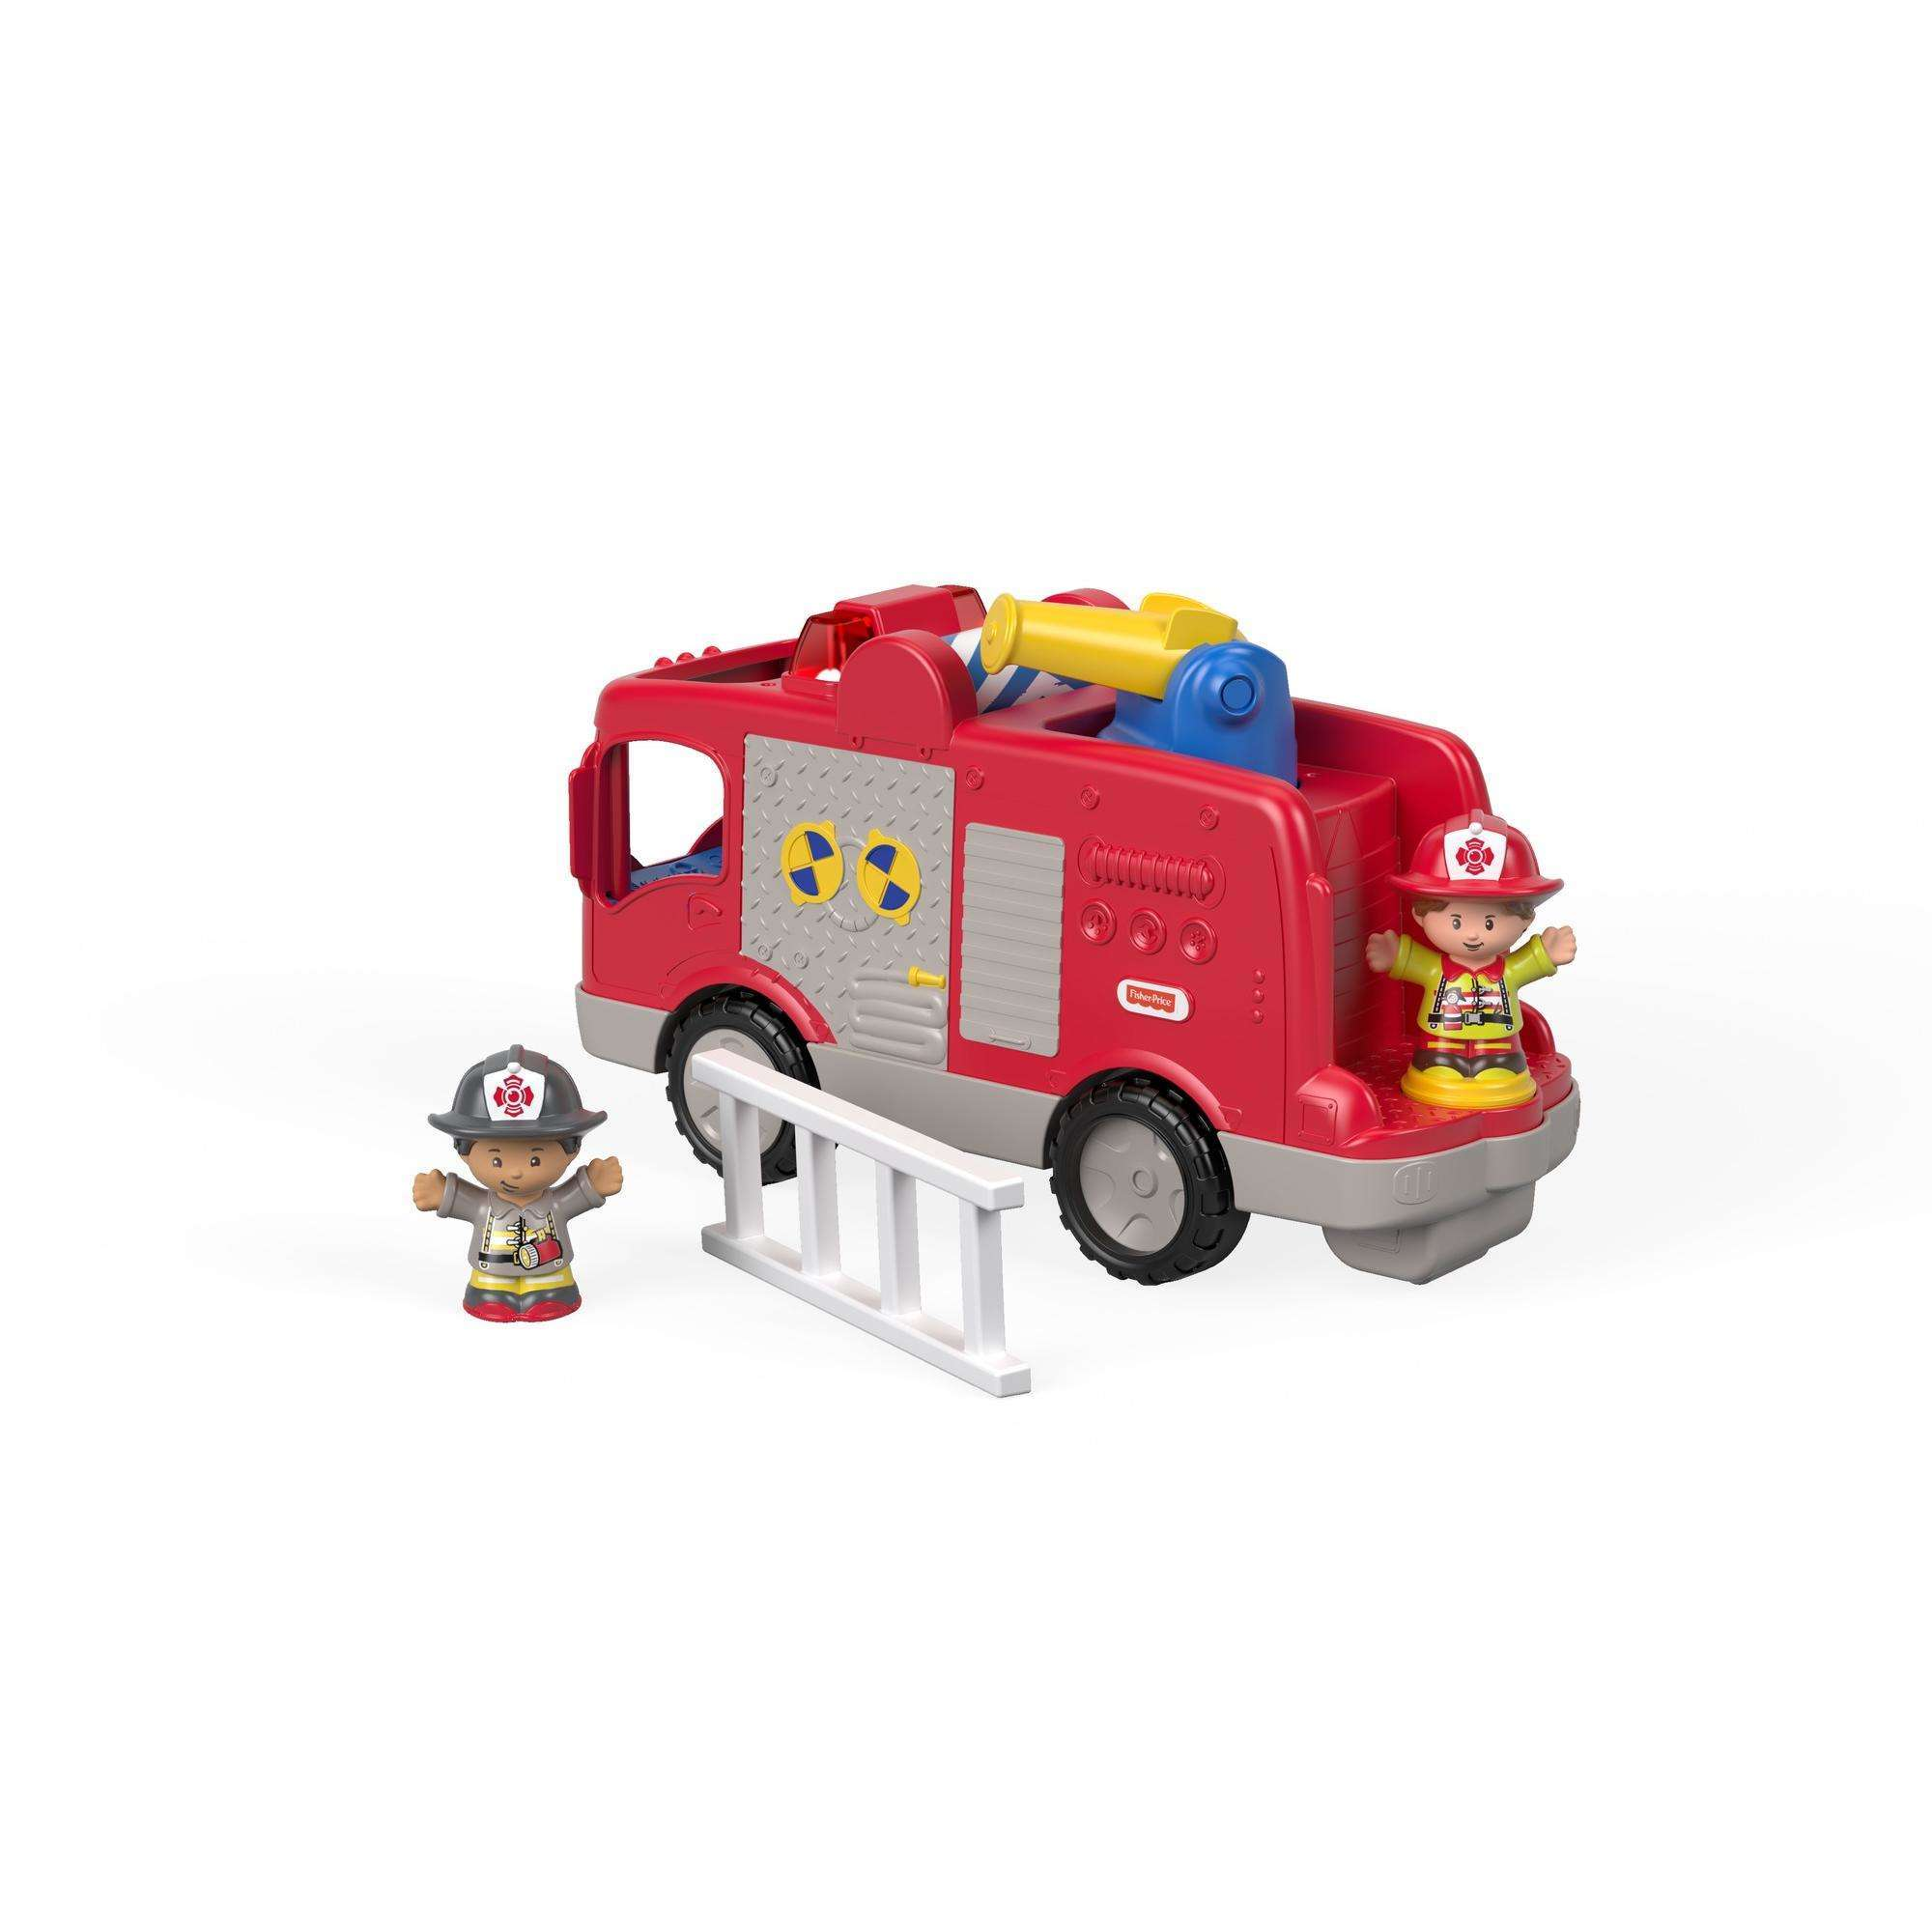 Little People Helping Others Fire Truck by Little People